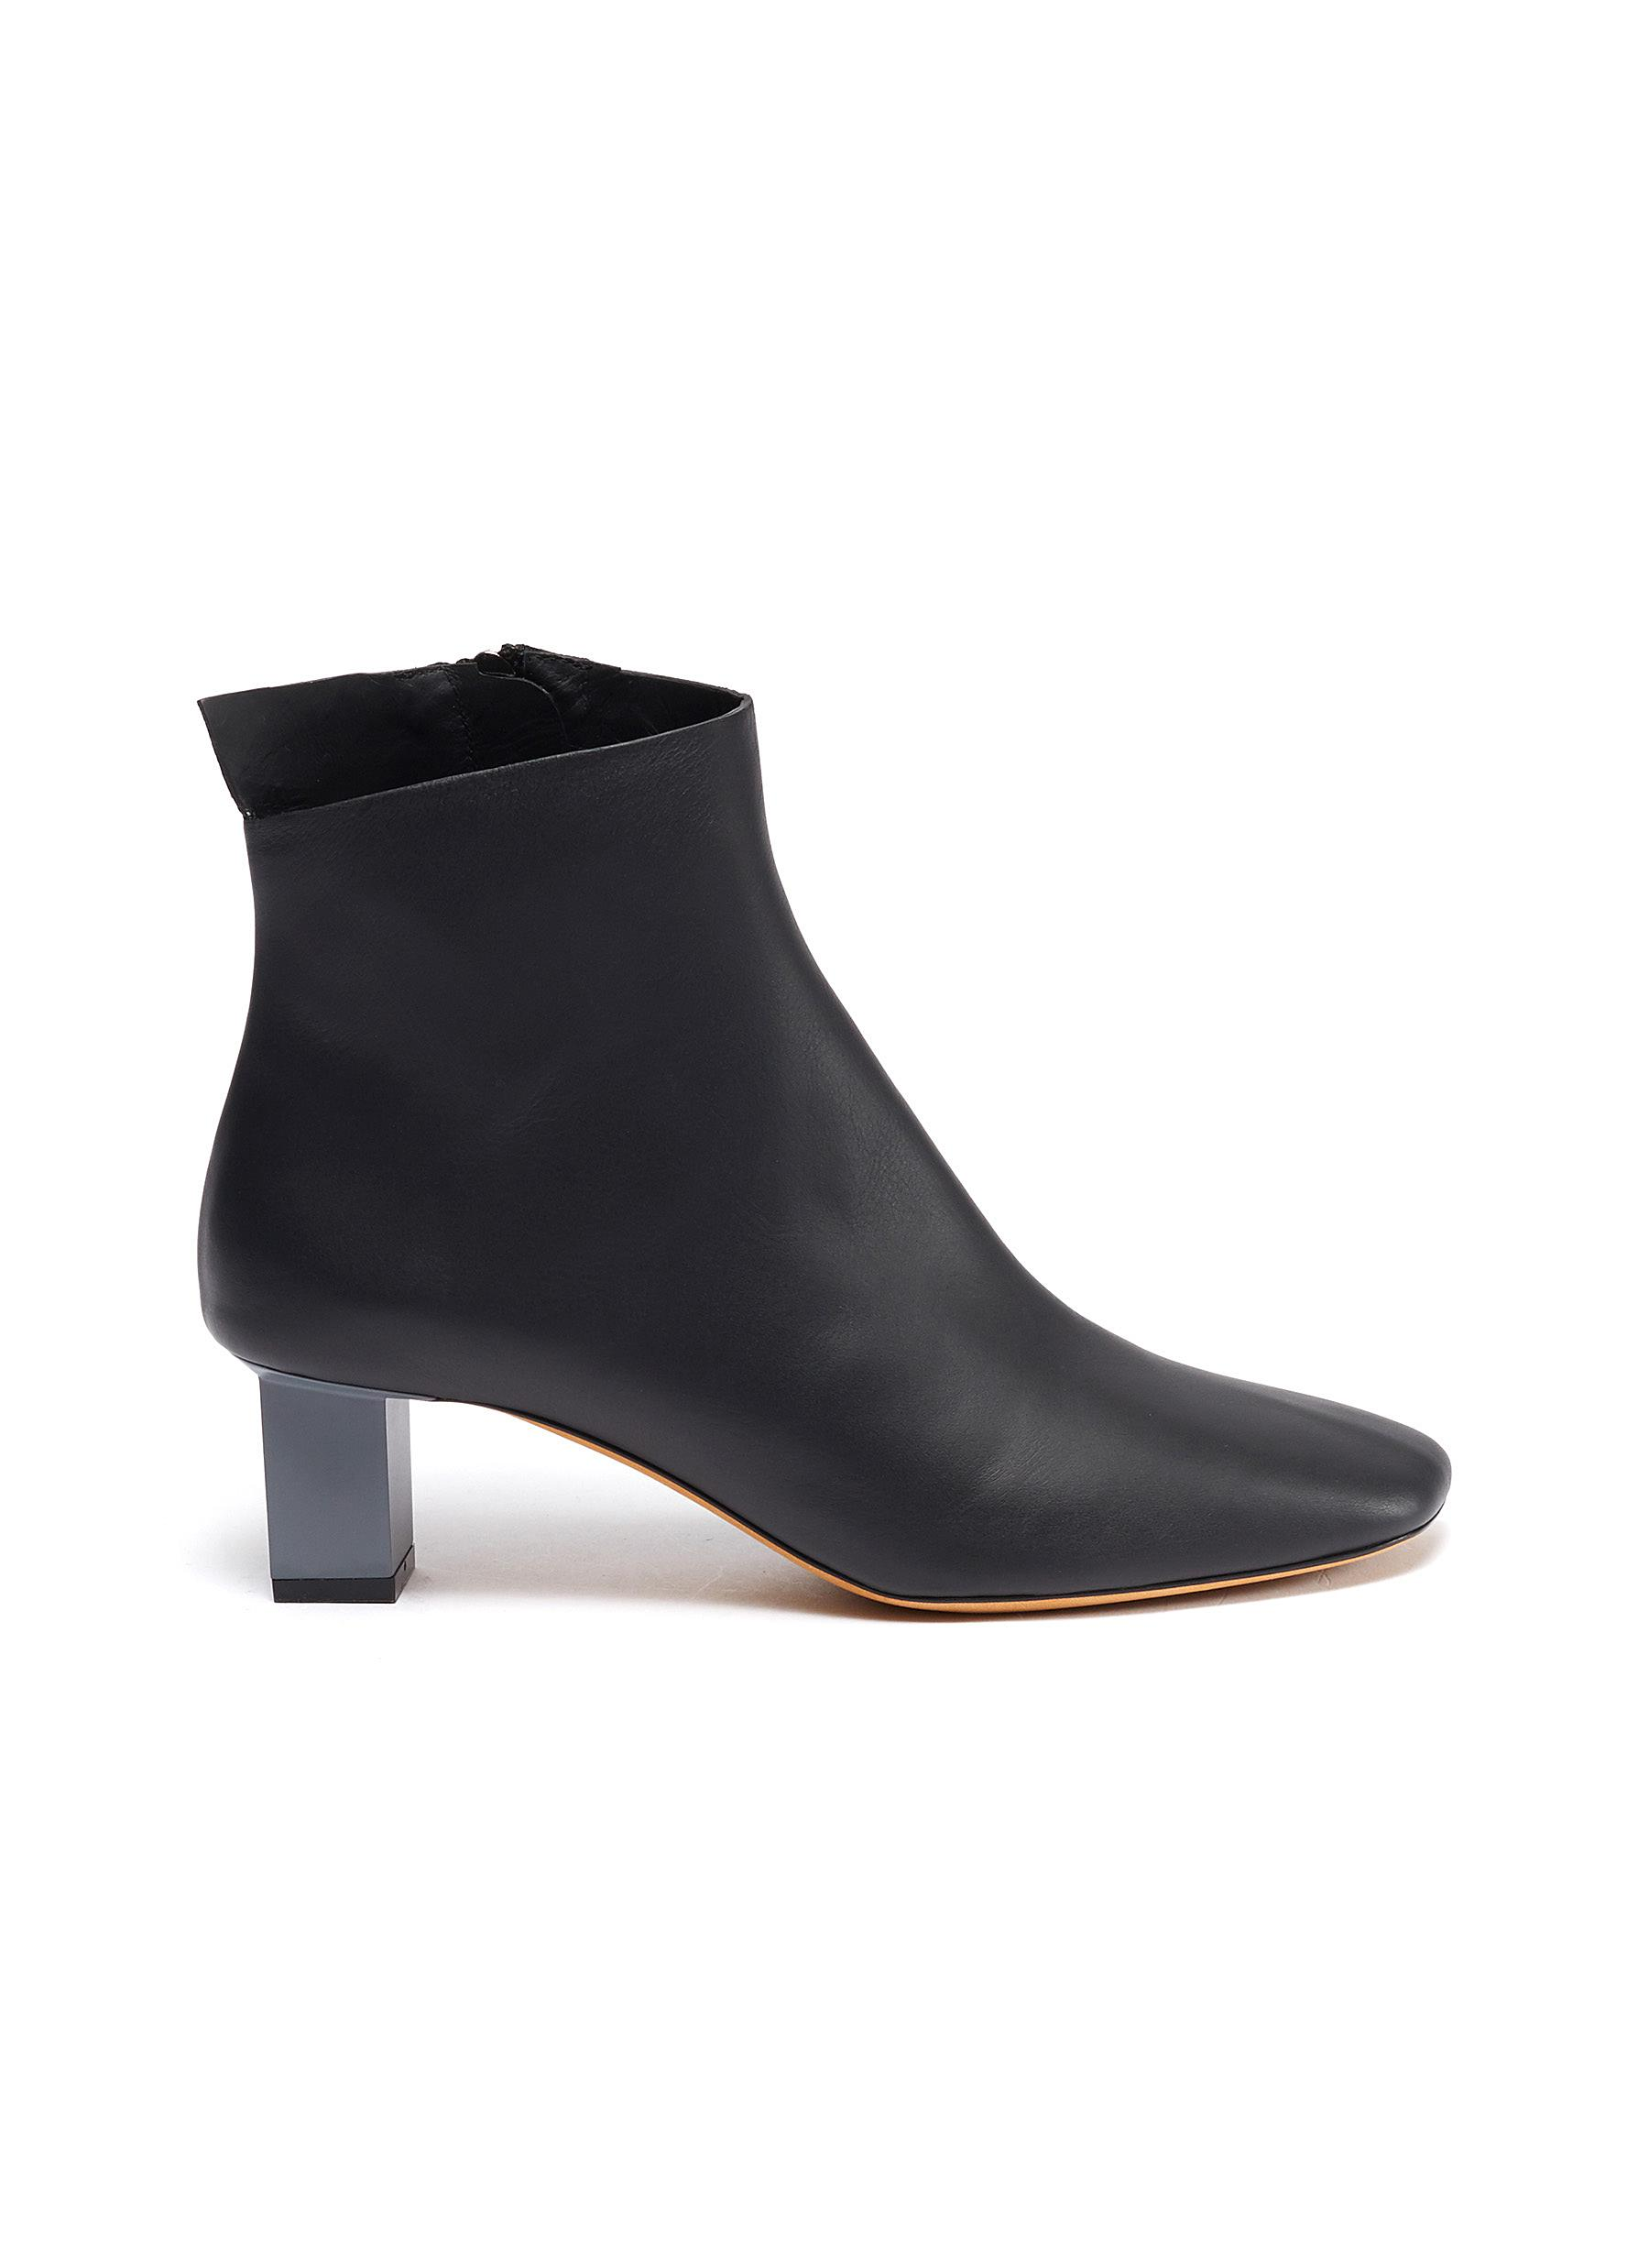 Solitario cube heel leather ankle boots by Gray Matters